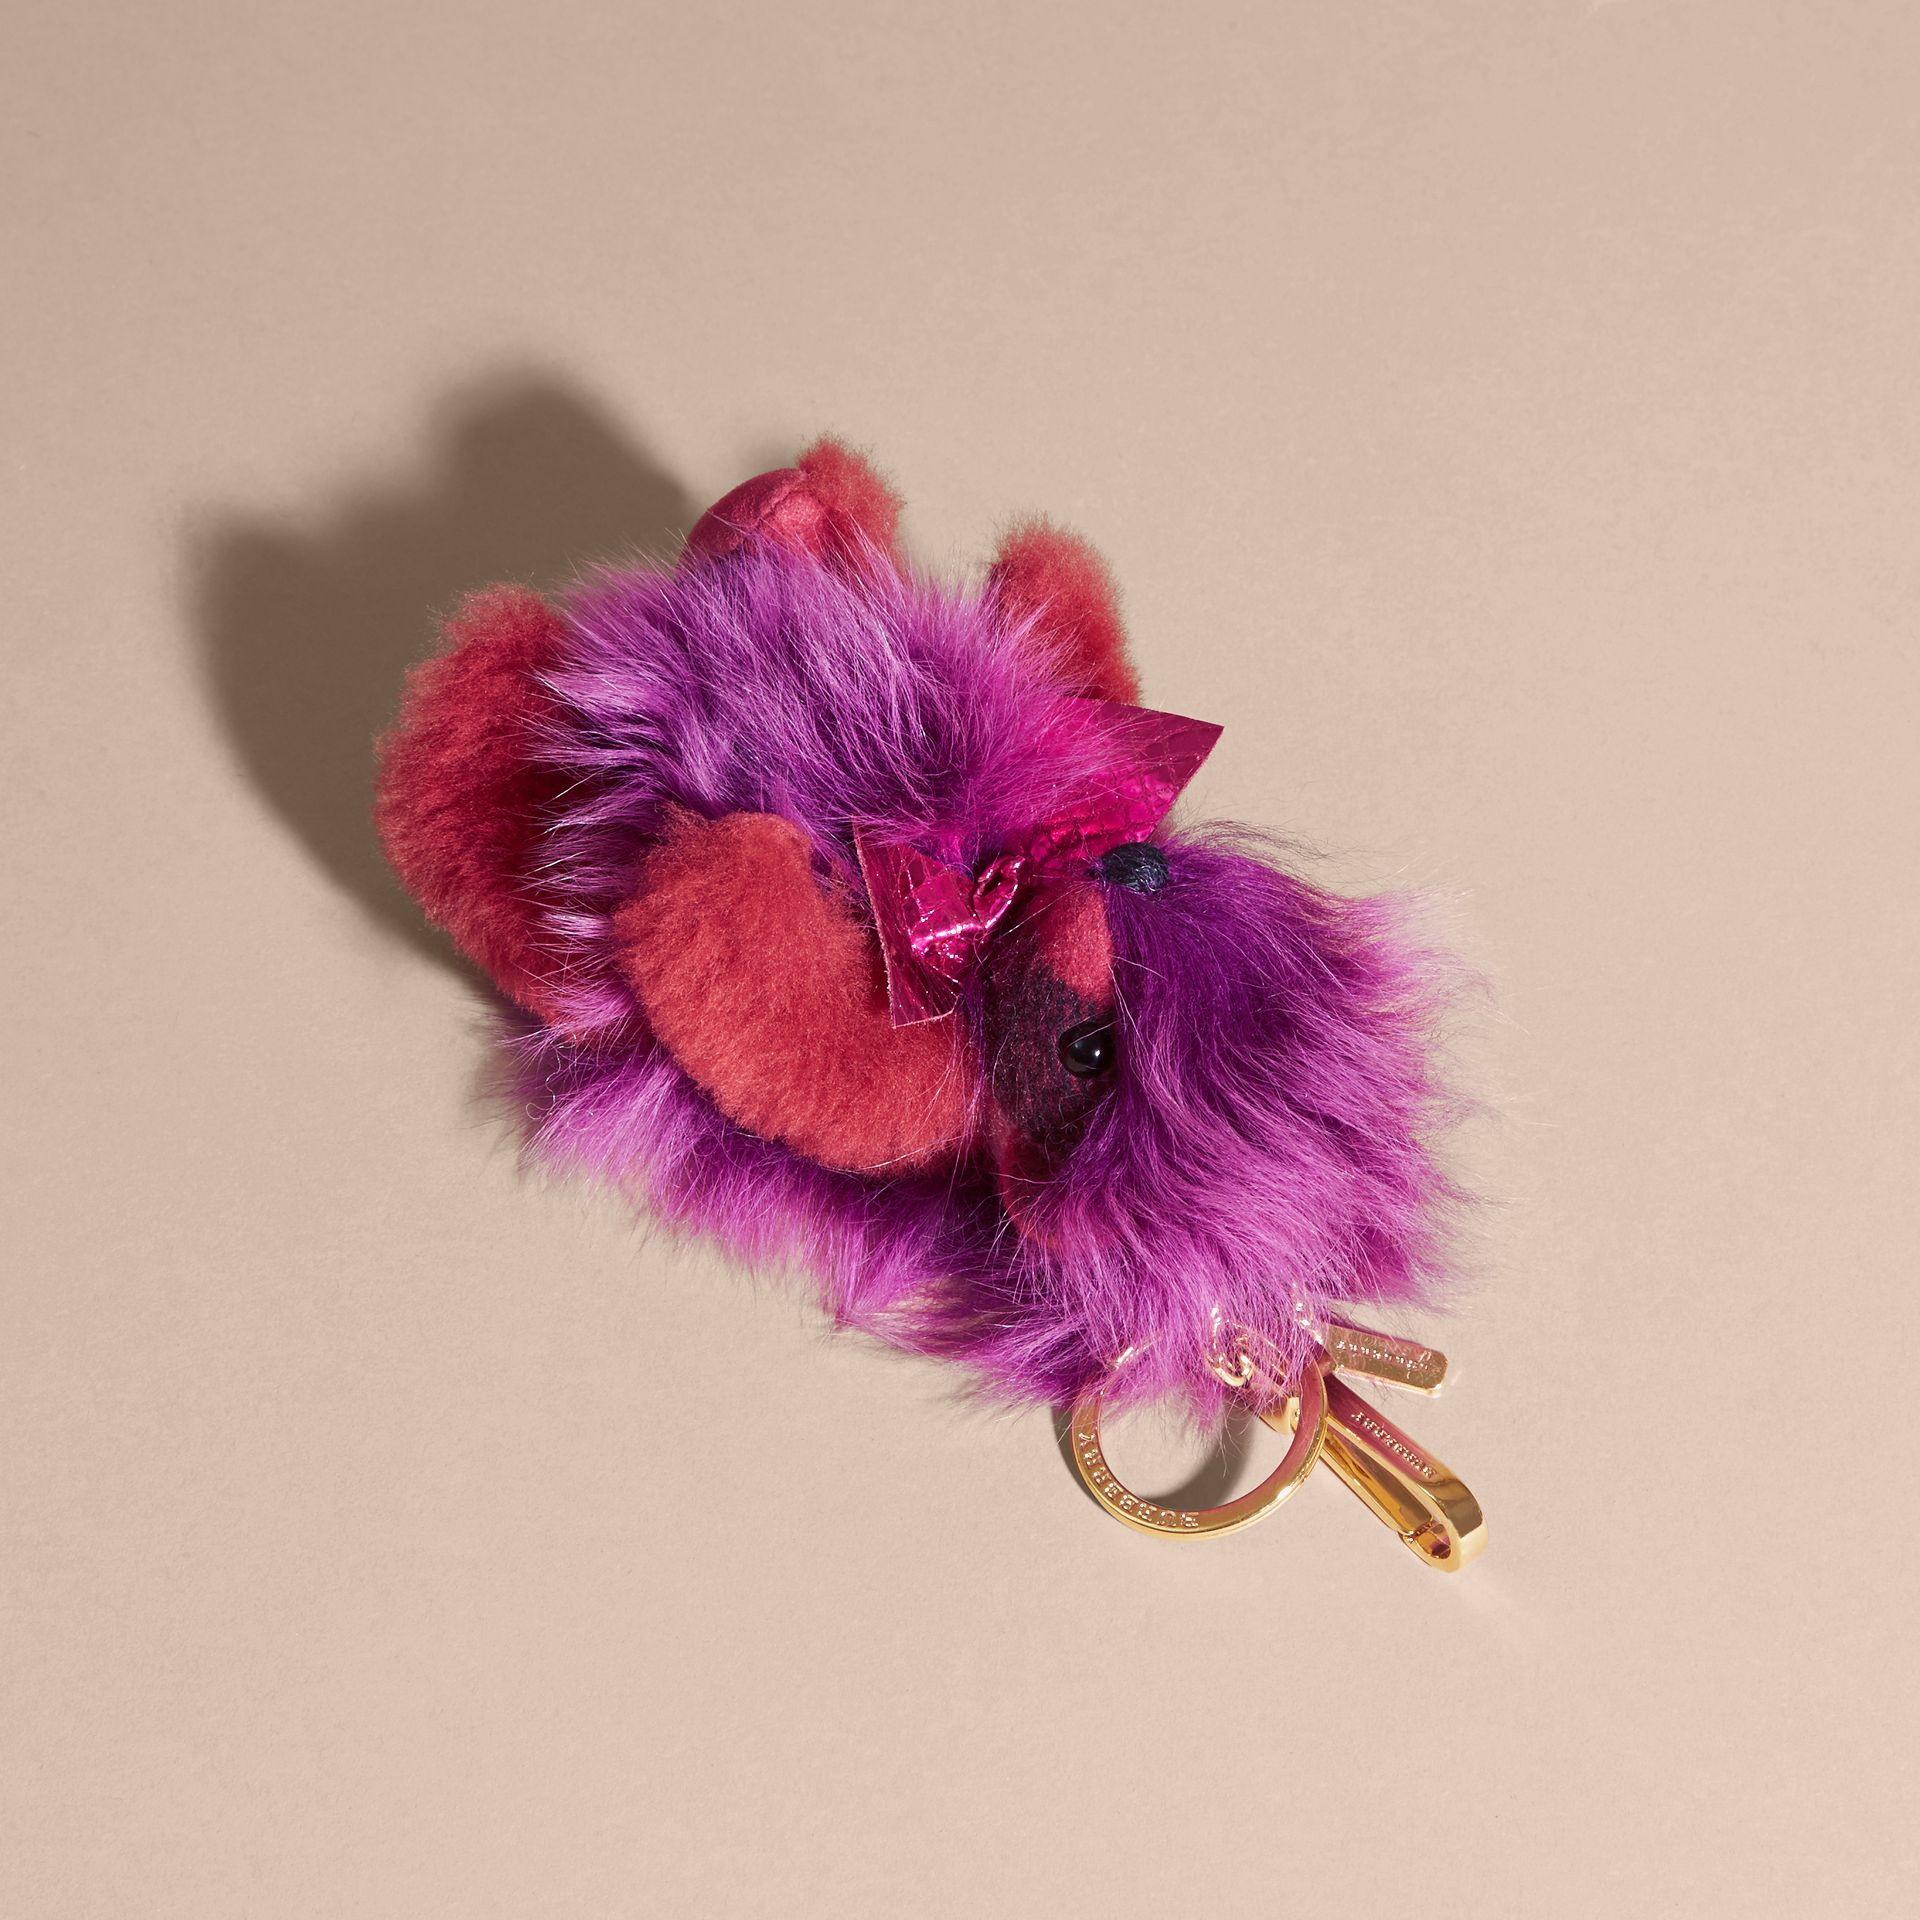 Thomas Bear Pom-Pom Charm in Check Cashmere in Fuchsia Pink - Women | Burberry - gallery image 4